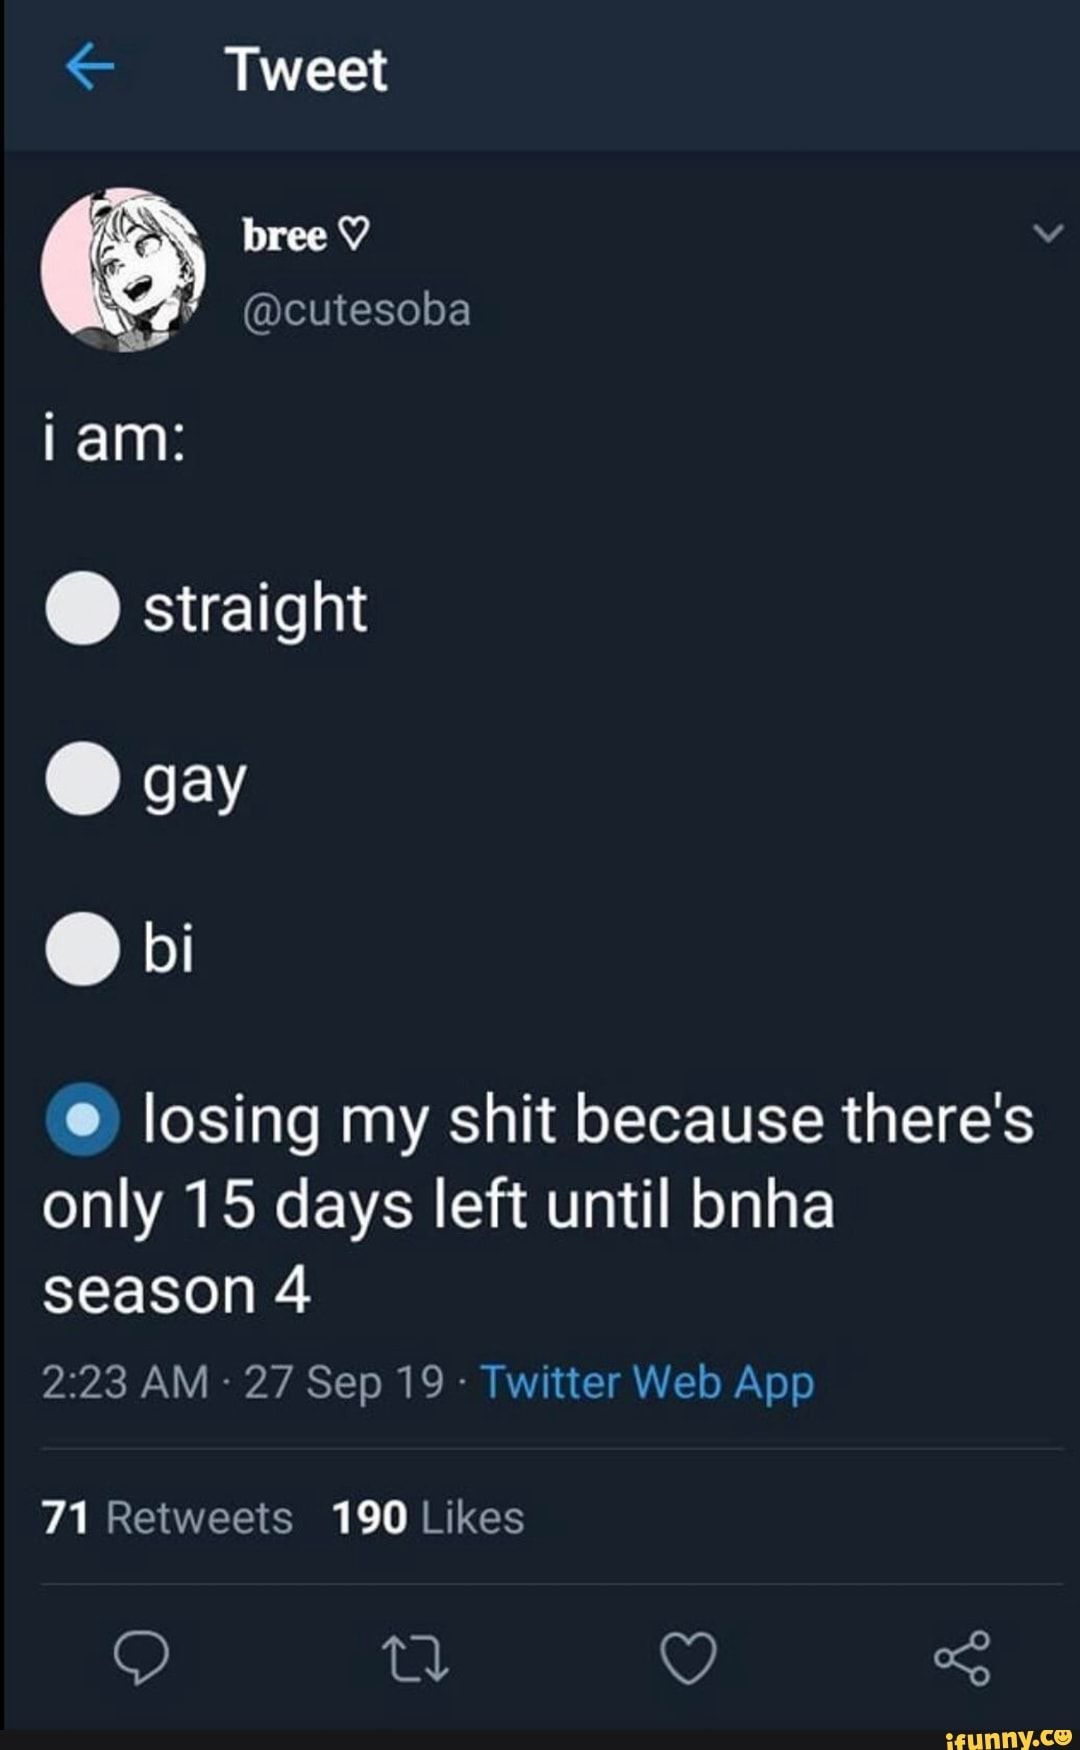 E Tweet Losing My Shit Because There S Only 15 Days Left Until Bnha Season 4 Ifunny My Hero Academia Memes My Hero Academia Manga My Hero